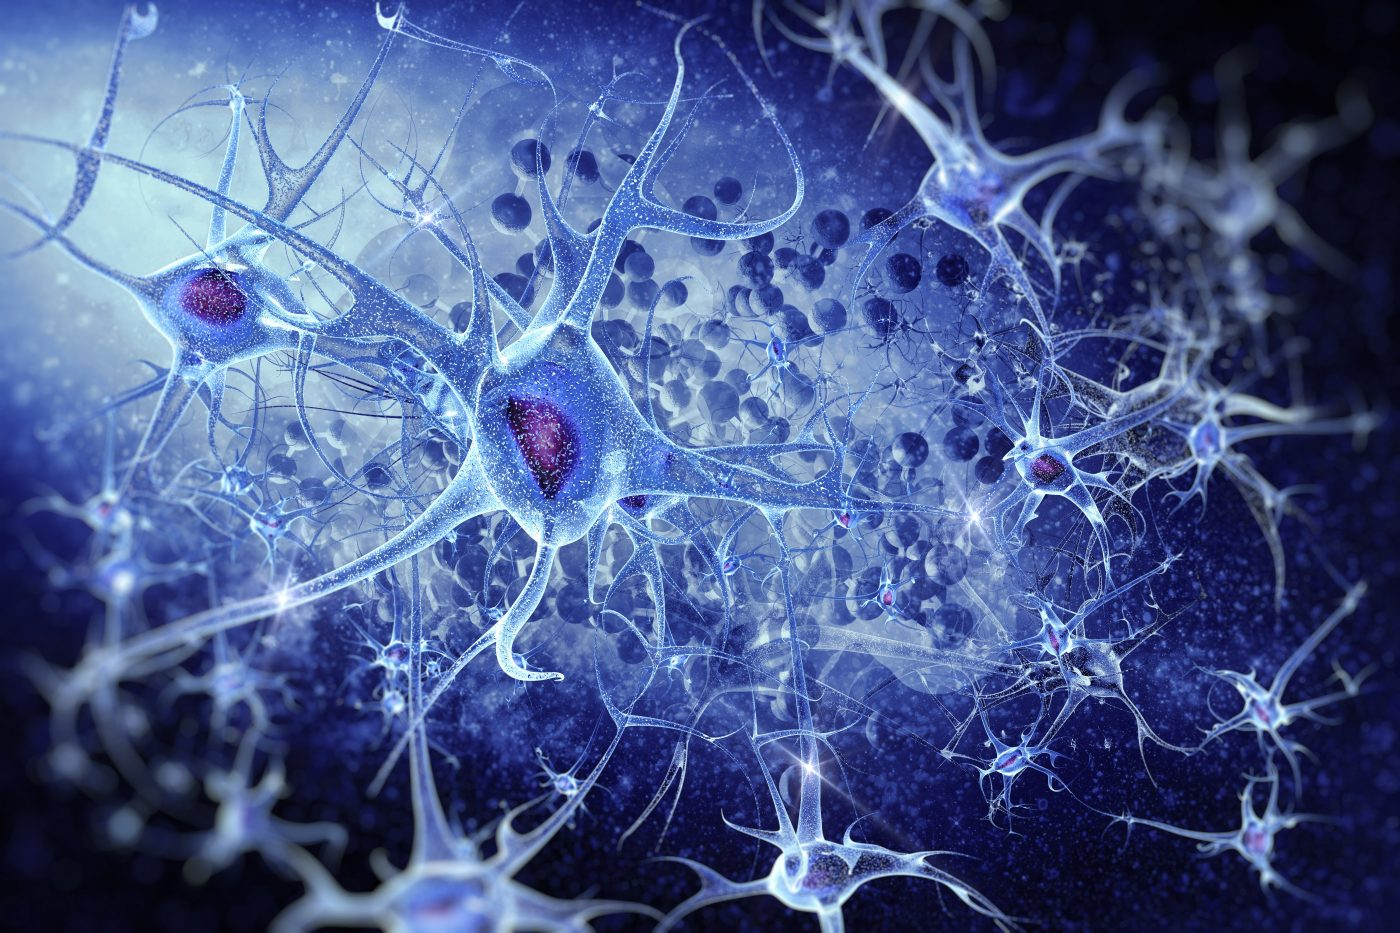 New Study Data Released on Therapeutic Agents For a Range of Brain Diseases